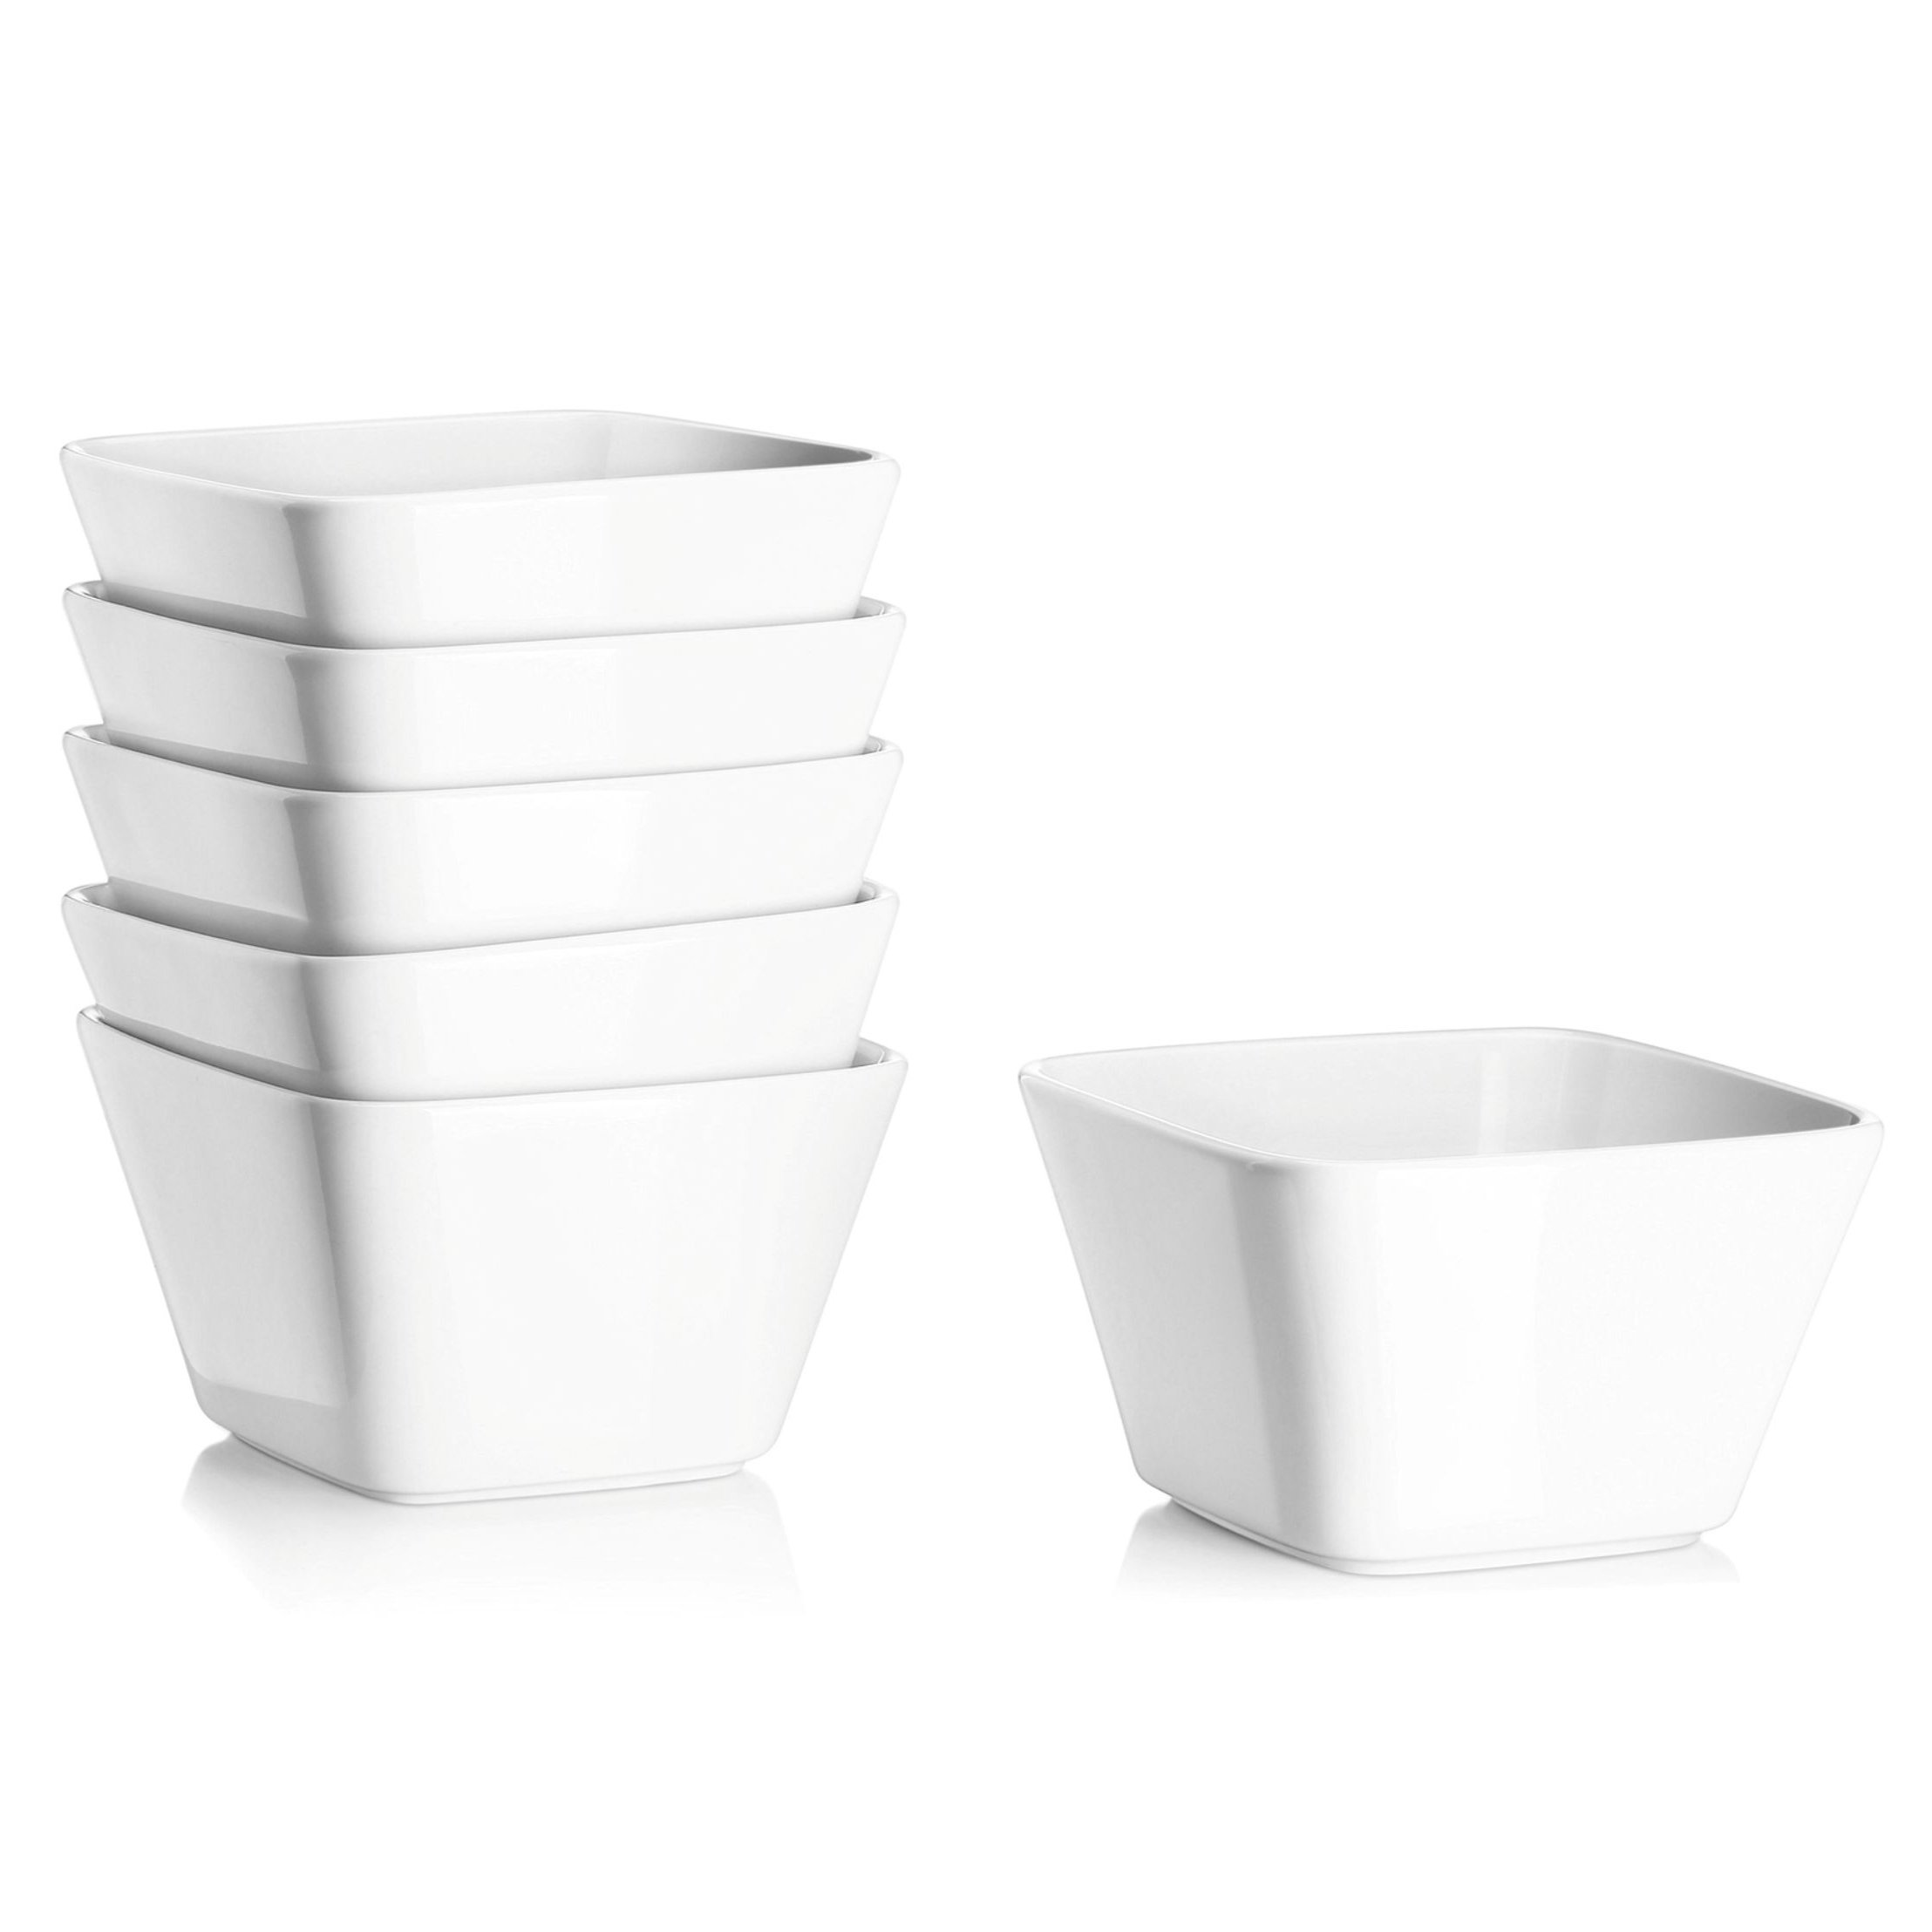 DOWAN 20 Ounce Porcelain Square Cereal Bowls - 6 Packs ,White by DOWAN (Image #1)